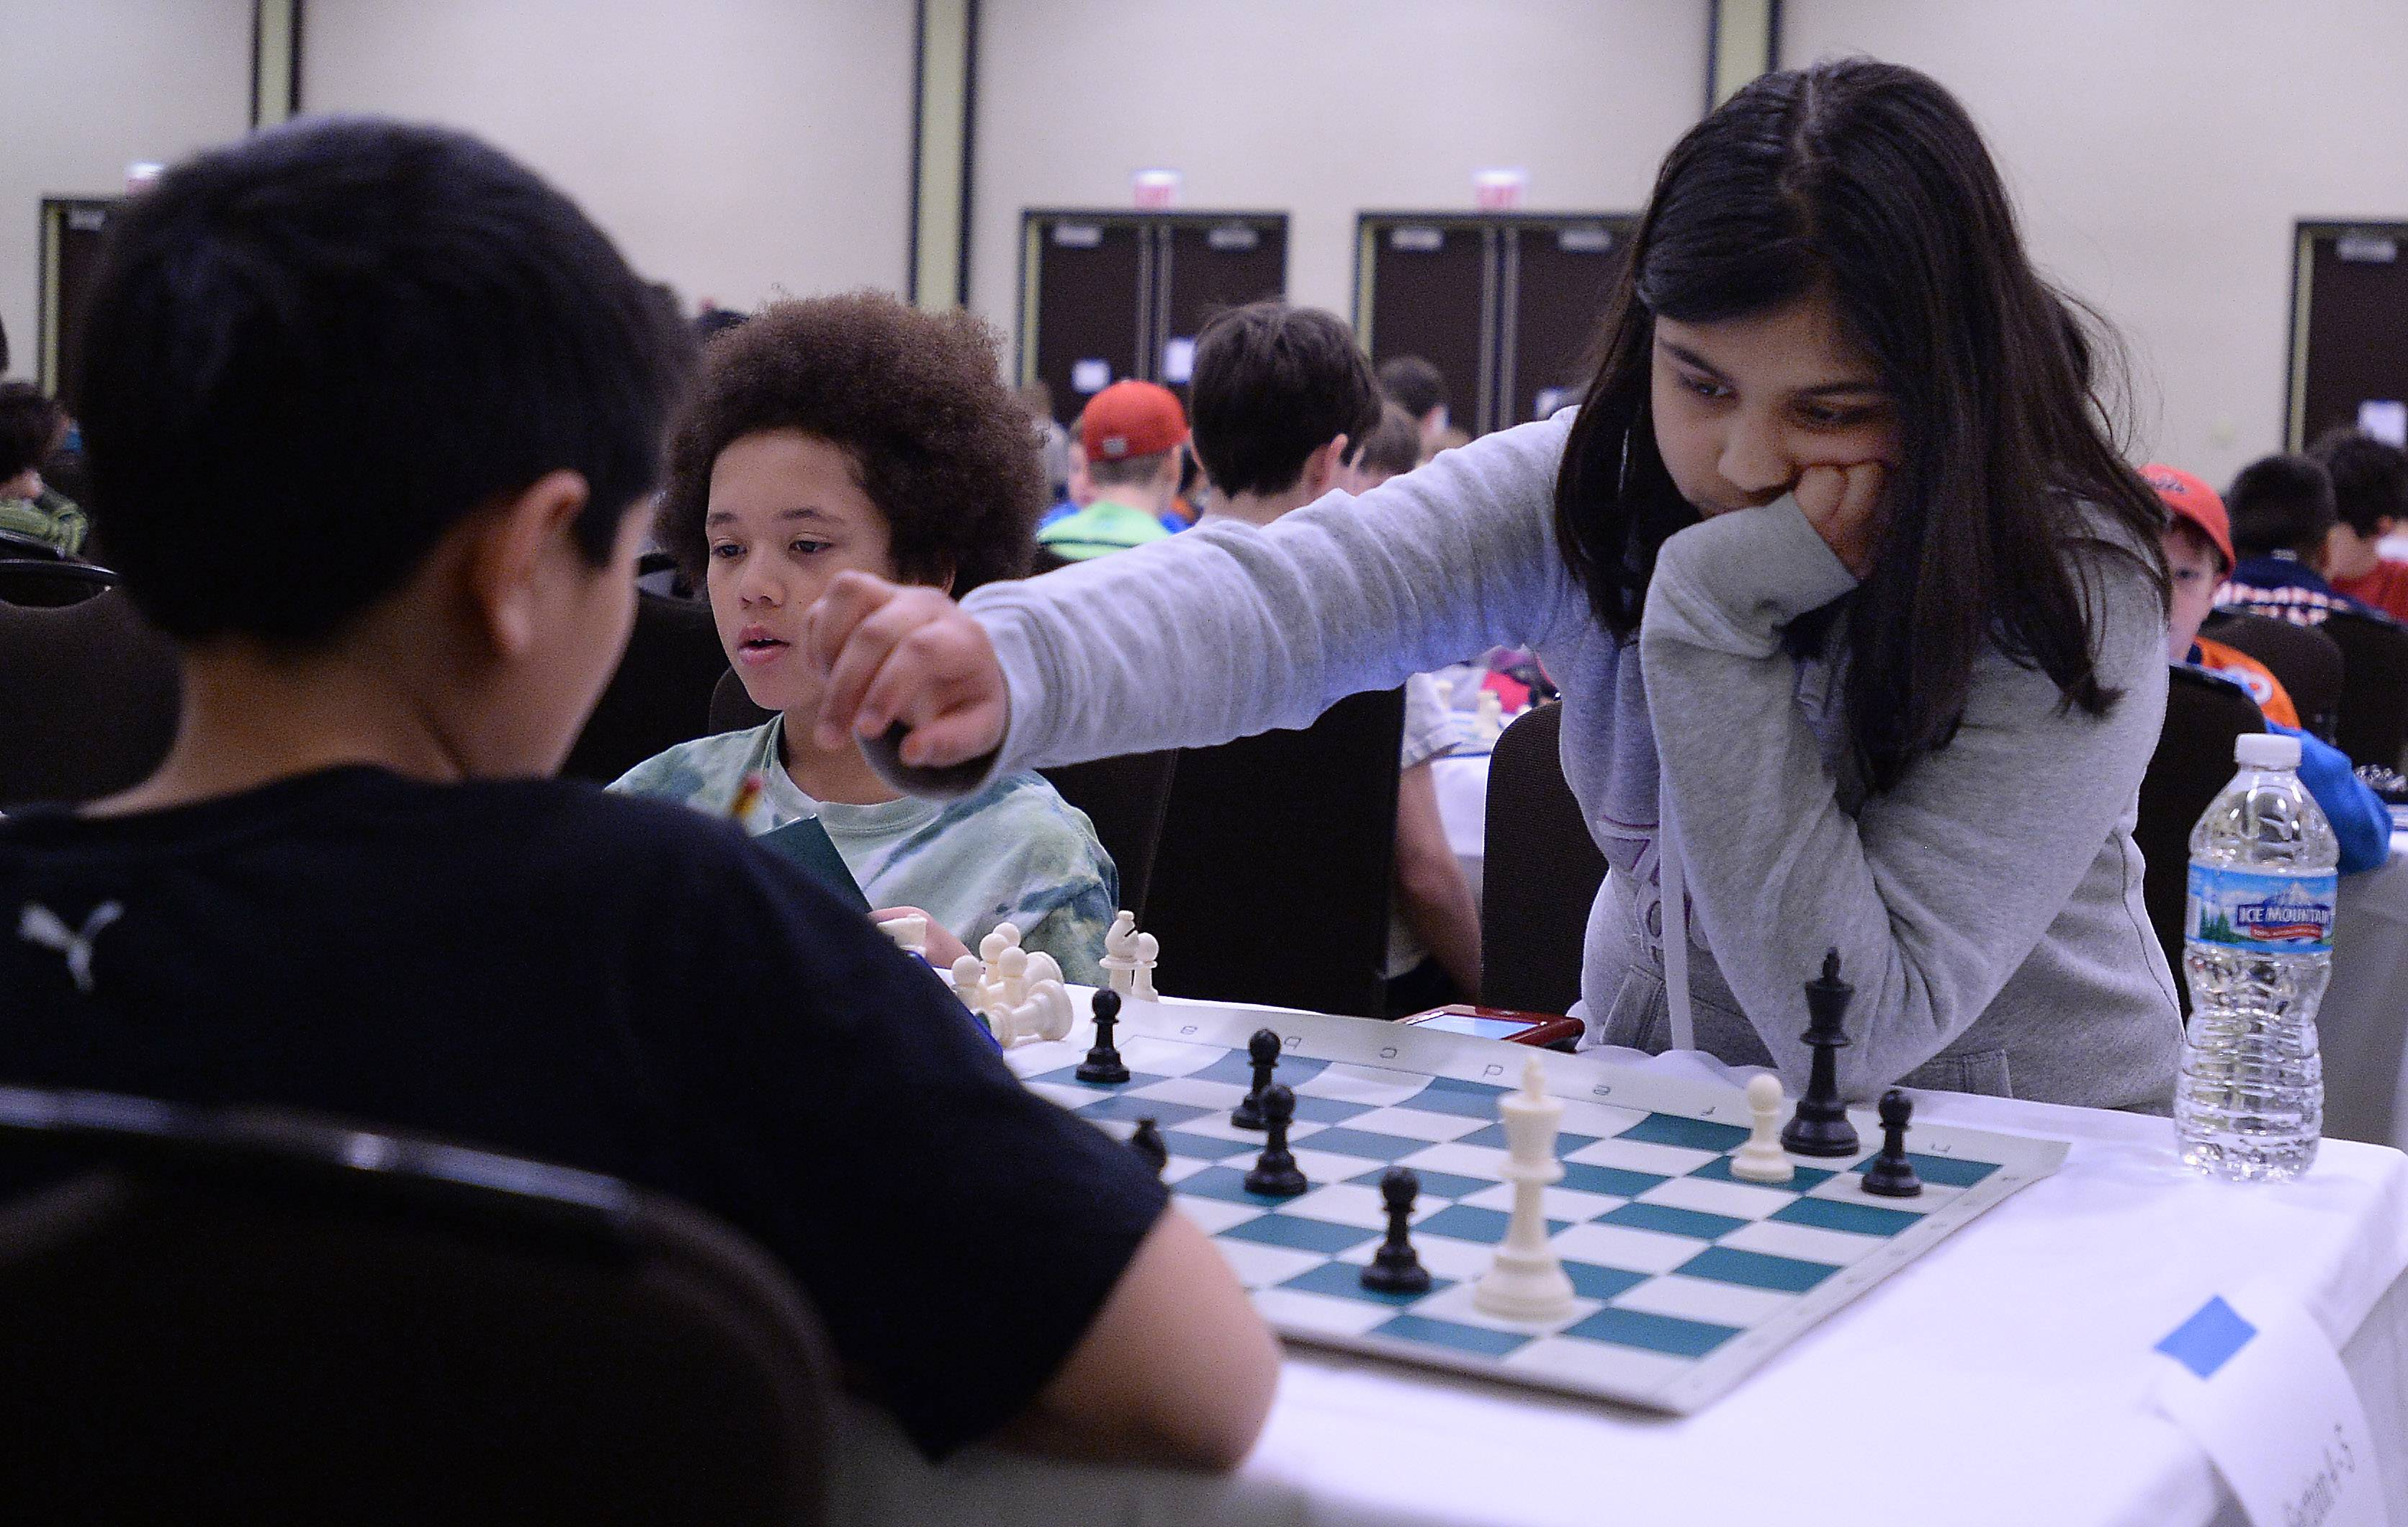 Shreya Mangalam, 10, of South Barrington, studies her opponent Matthew Li during the Illinois K-8 Chess Championships at the Hyatt Regency in Schaumburg last month. Shreya placed first in her age group.